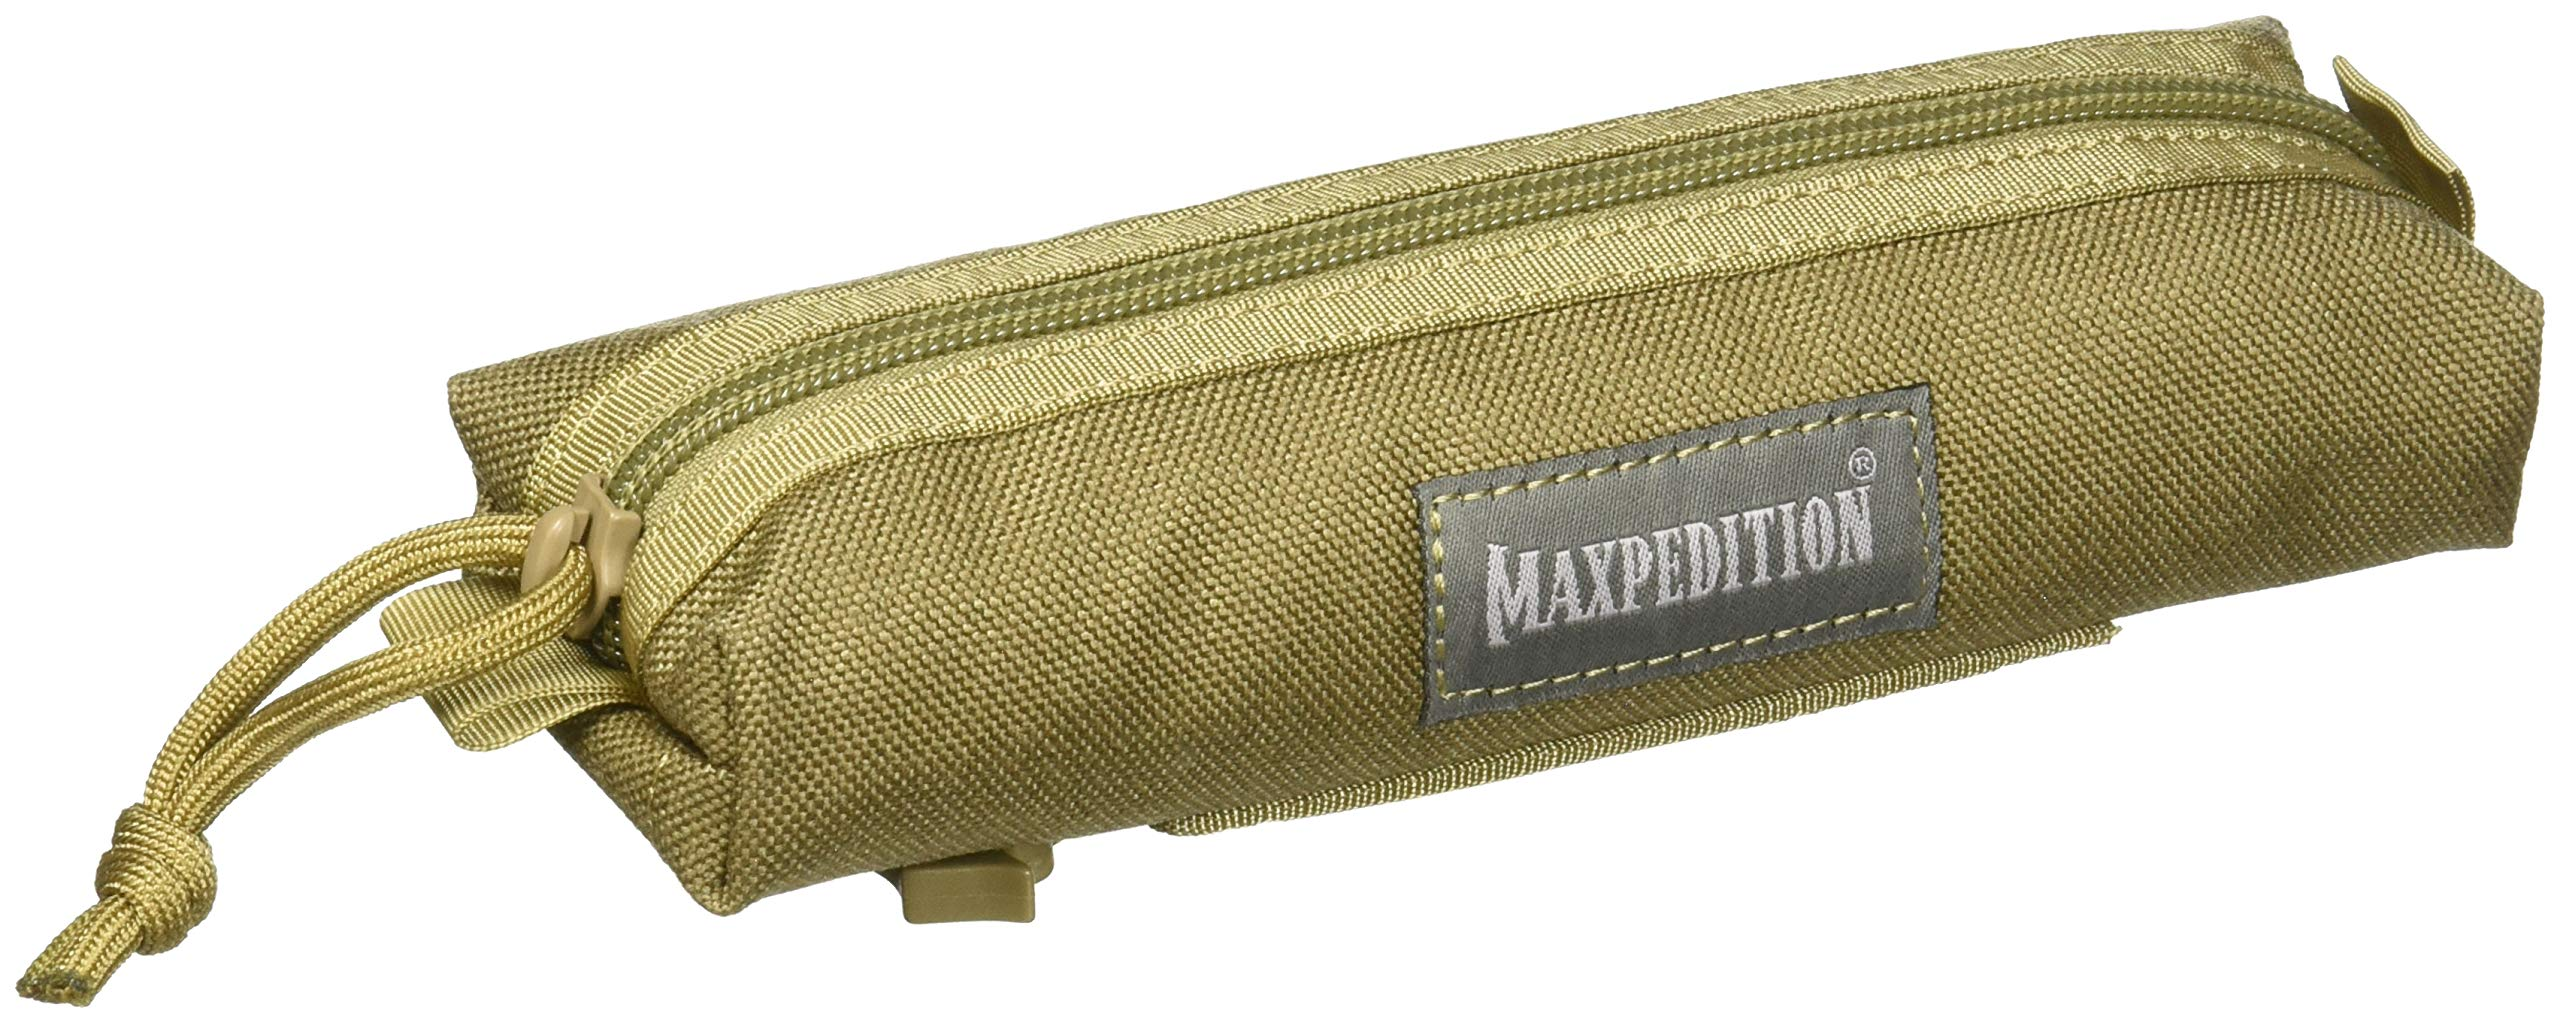 81oZsmuYMTL - Maxpedition Gear Cocoon Pouch